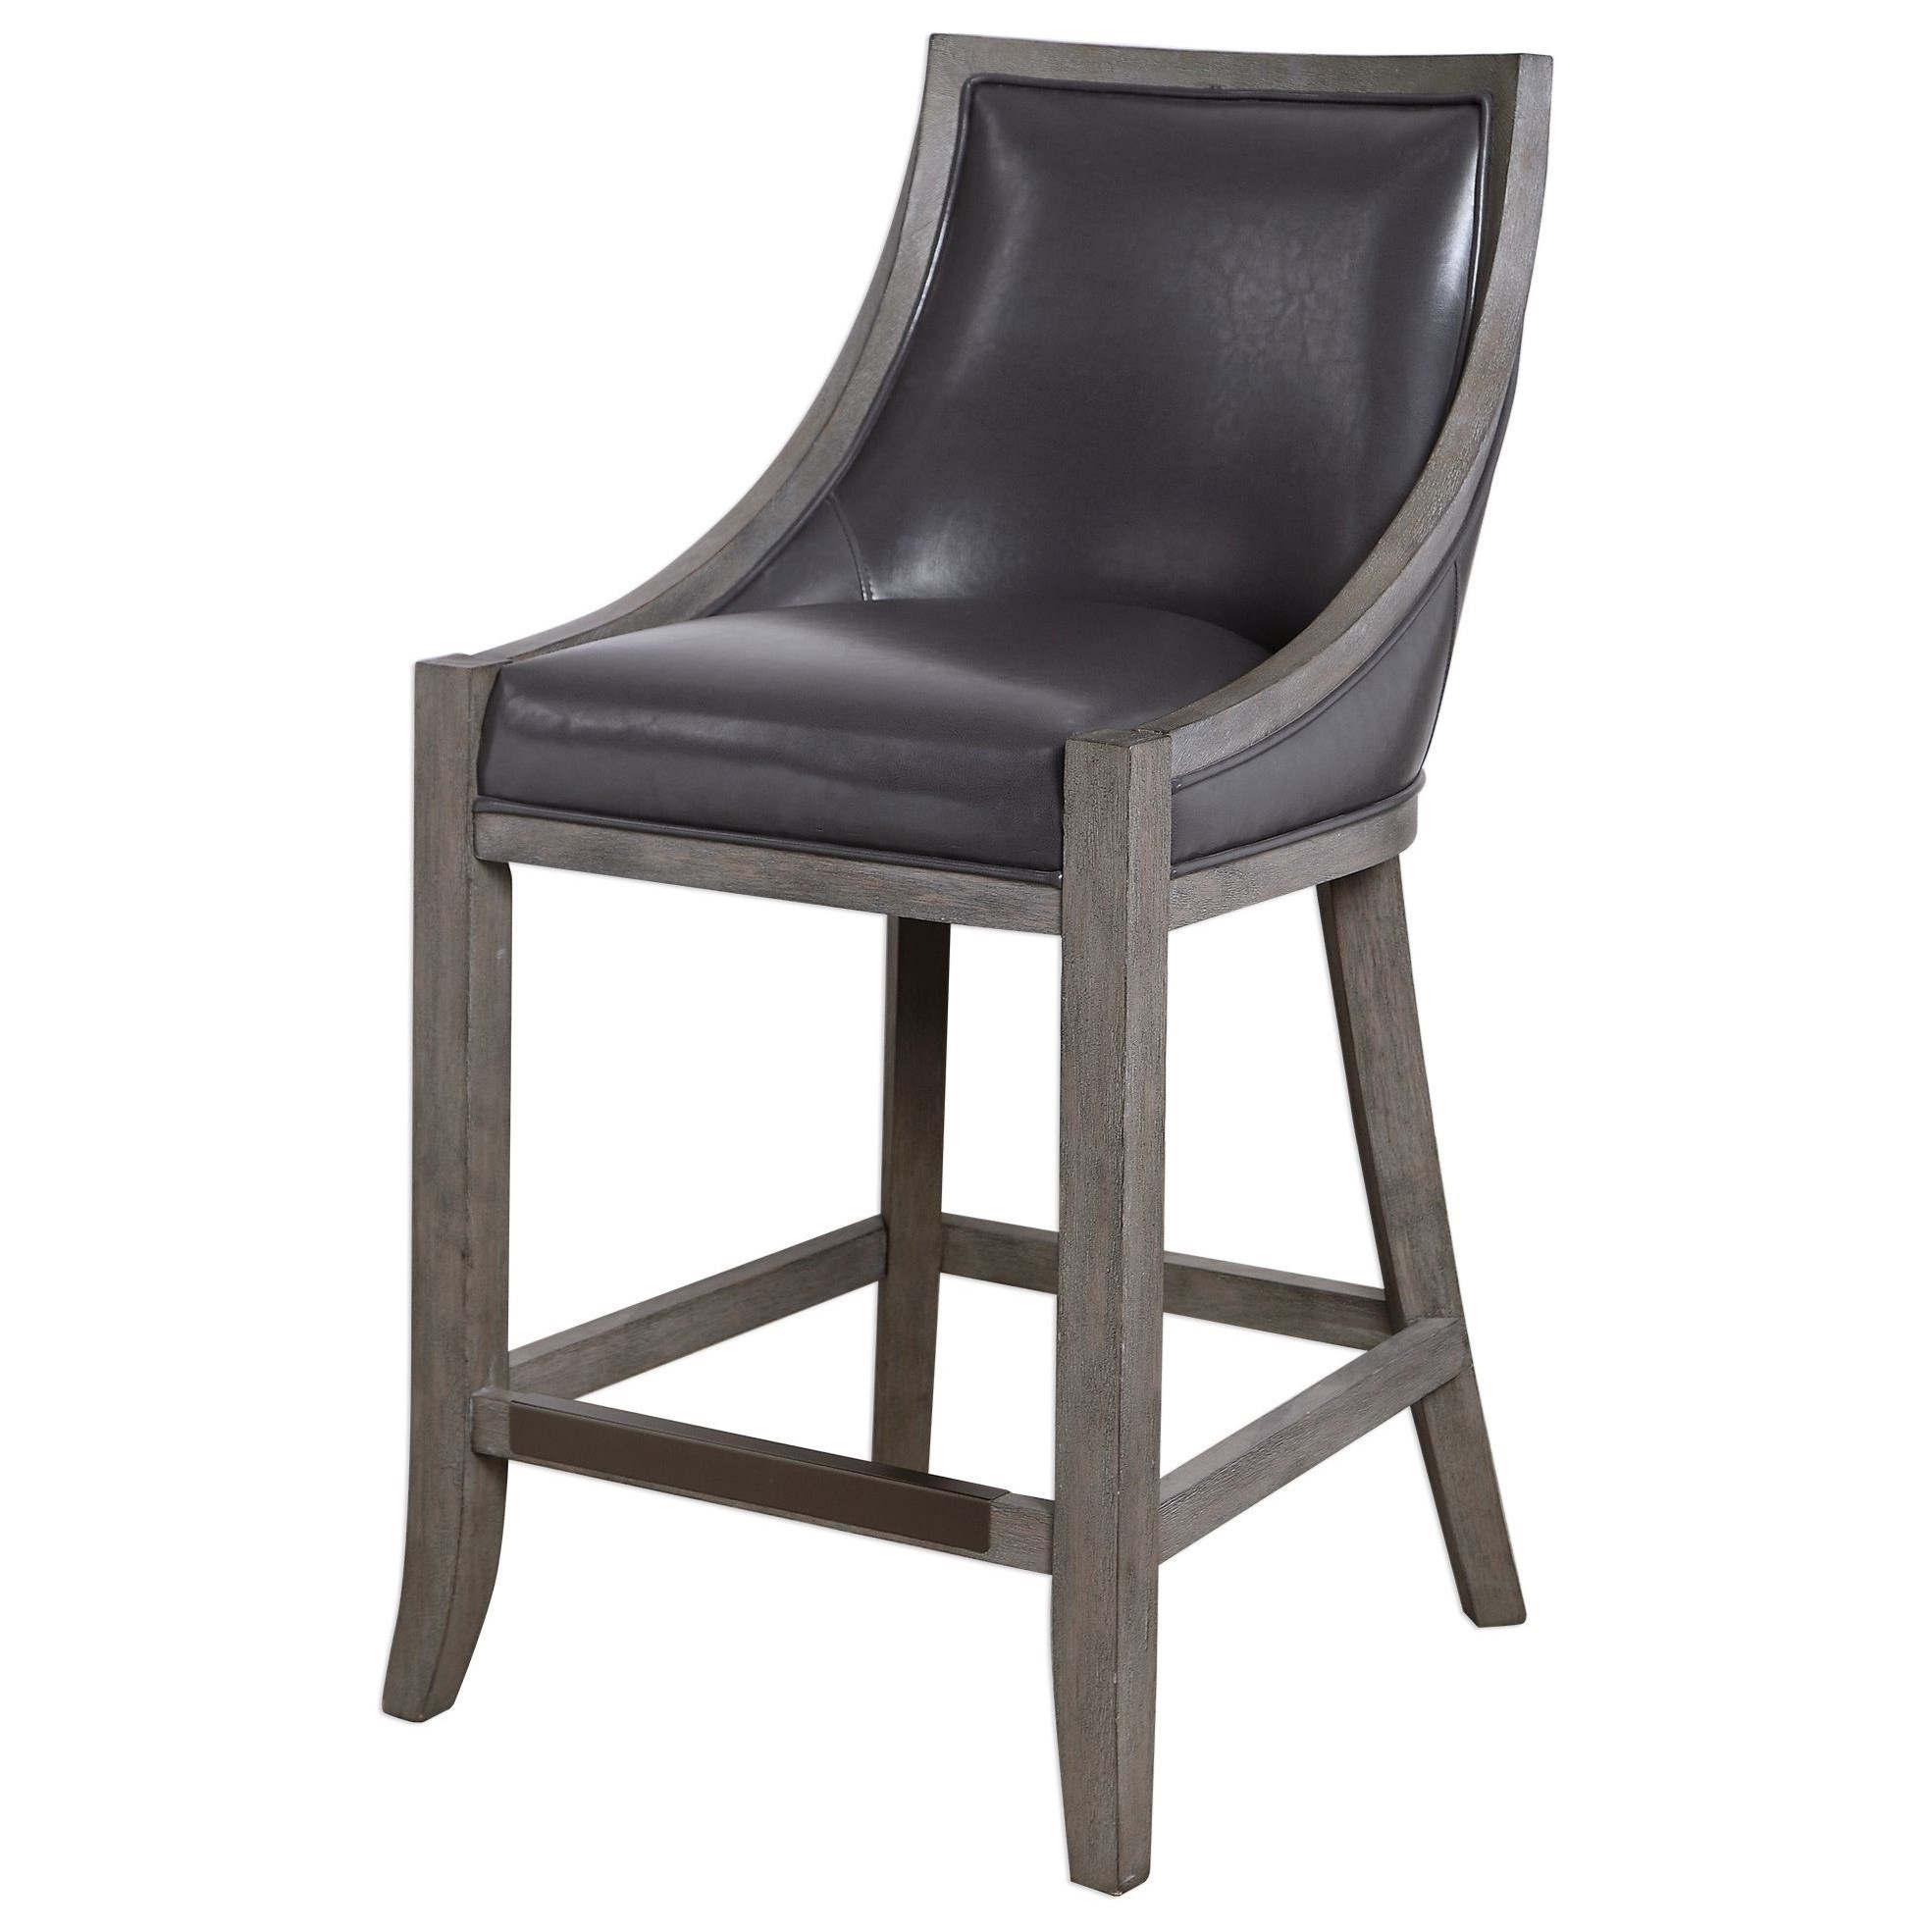 Accent Furniture - Stools Elowen Leather Counter Stool by Uttermost at Factory Direct Furniture